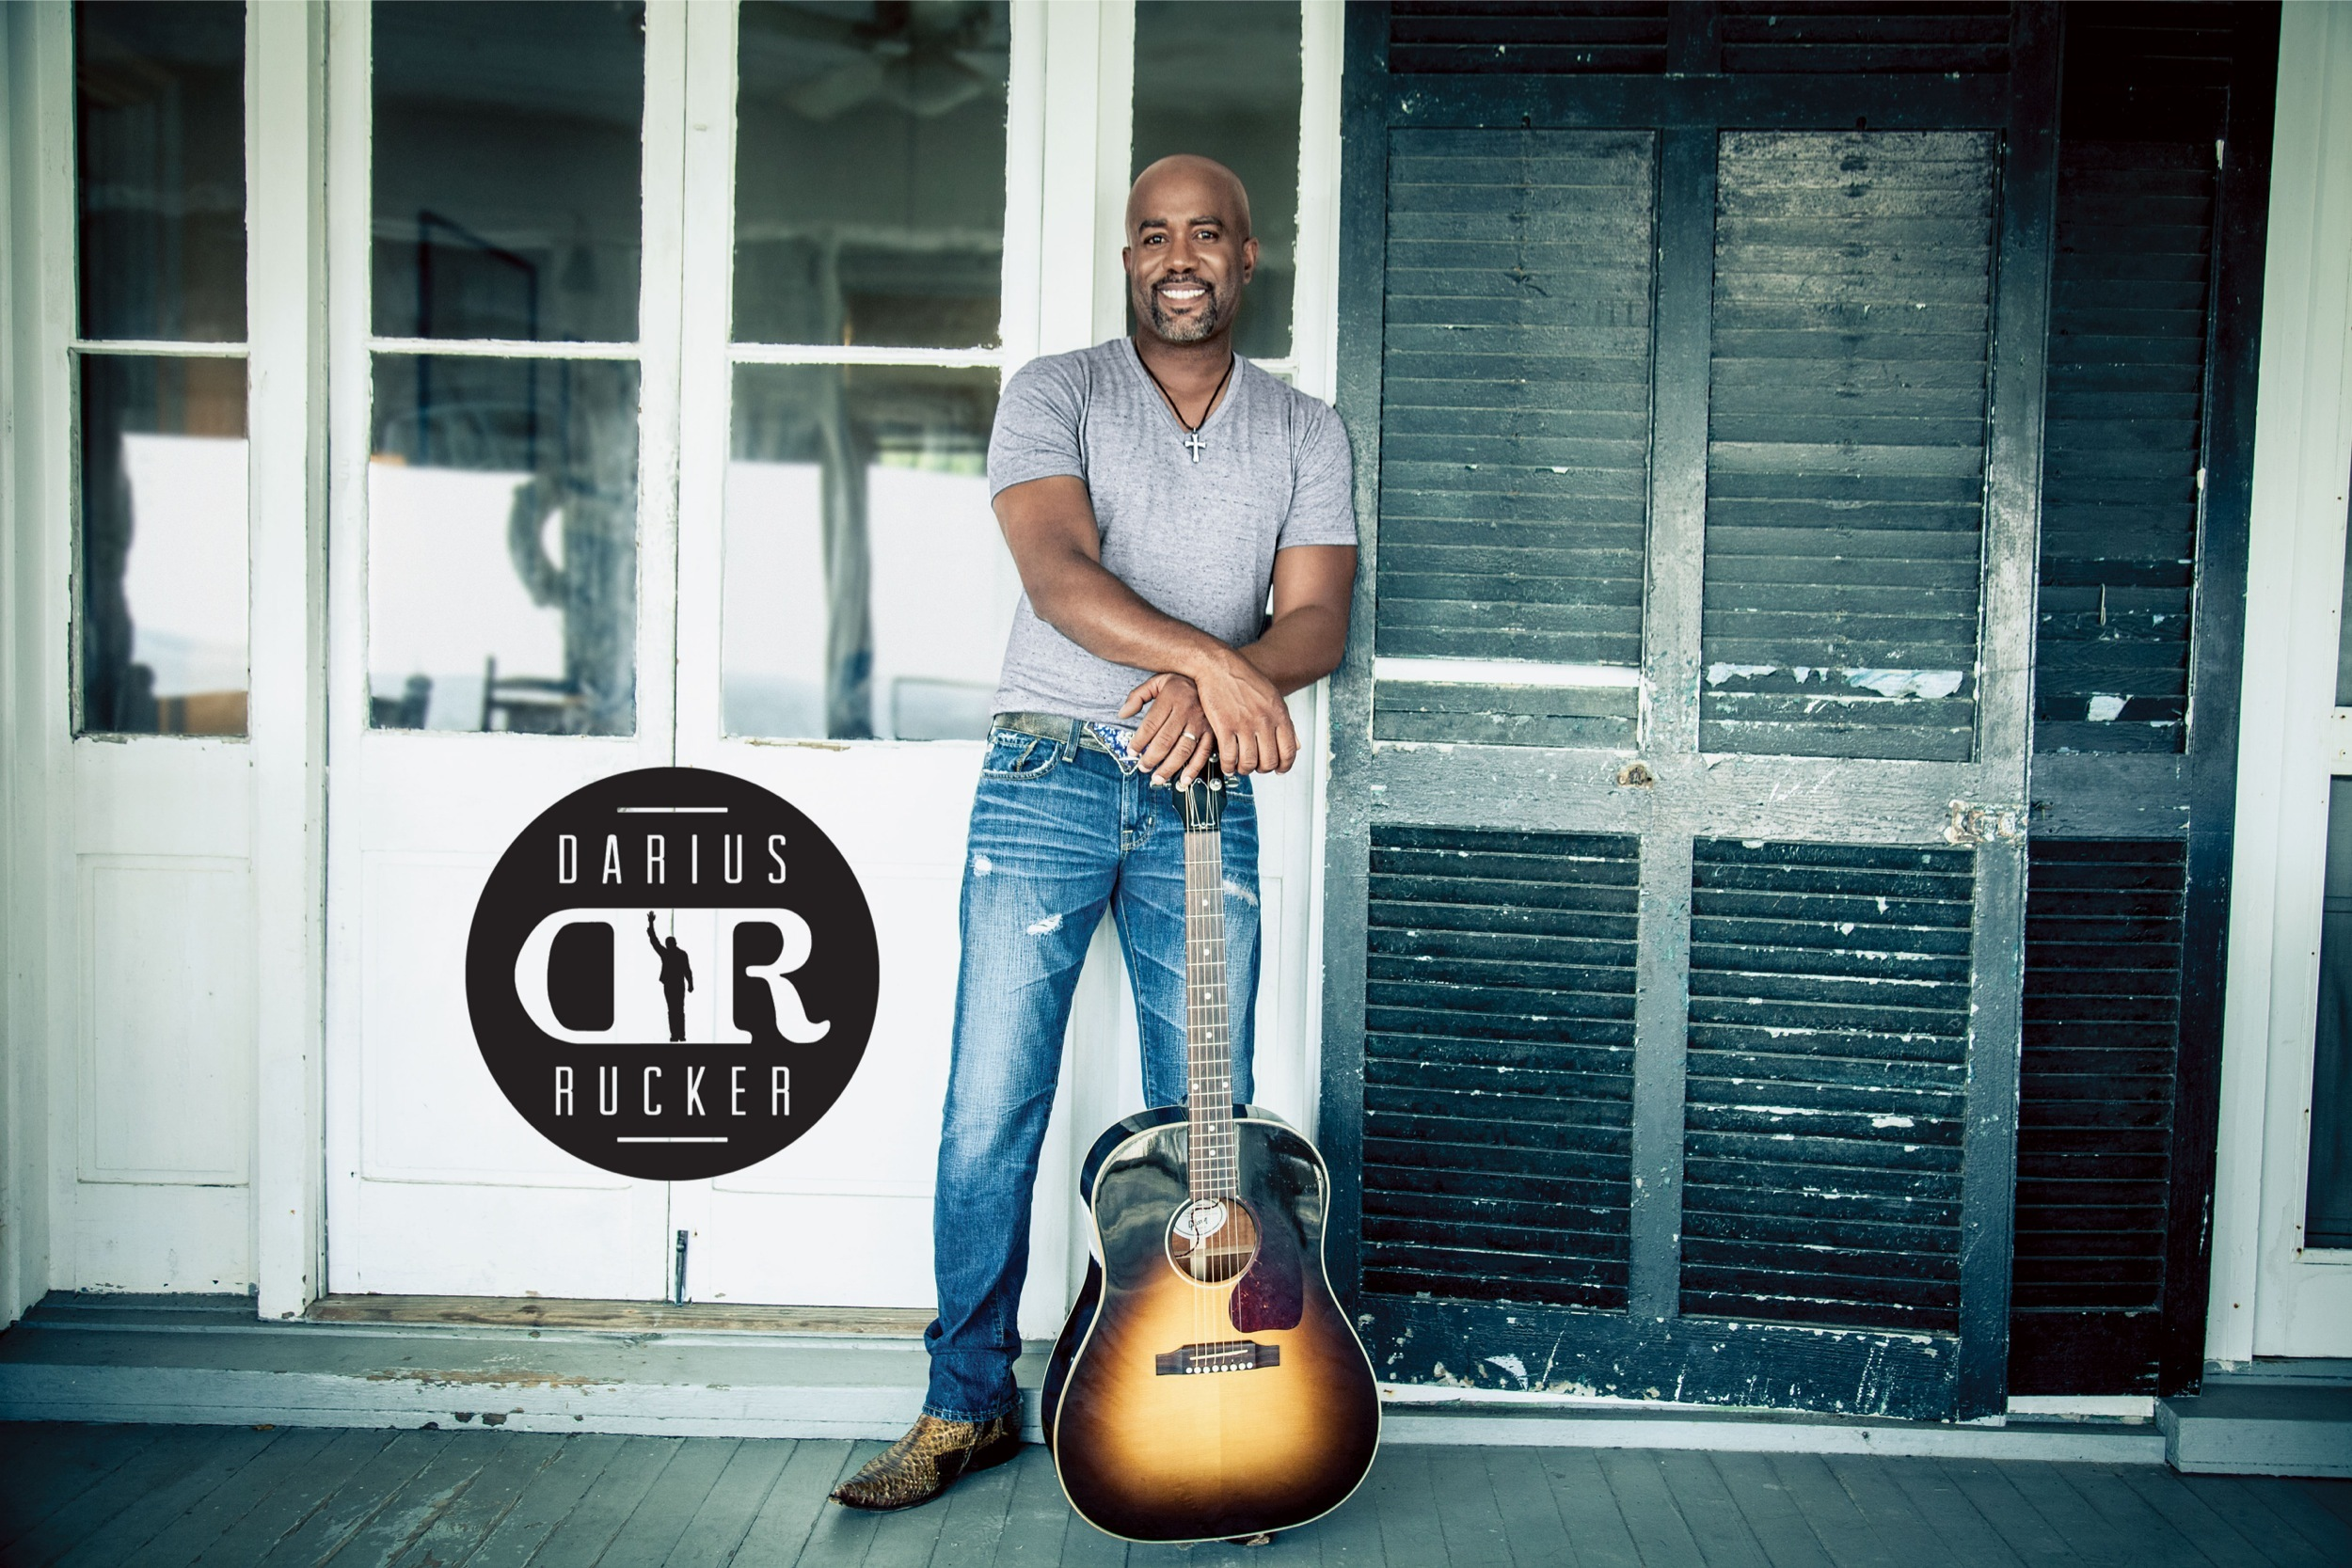 Charitybuzz Darius Rucker Signed Ampamp Personalized Guitar